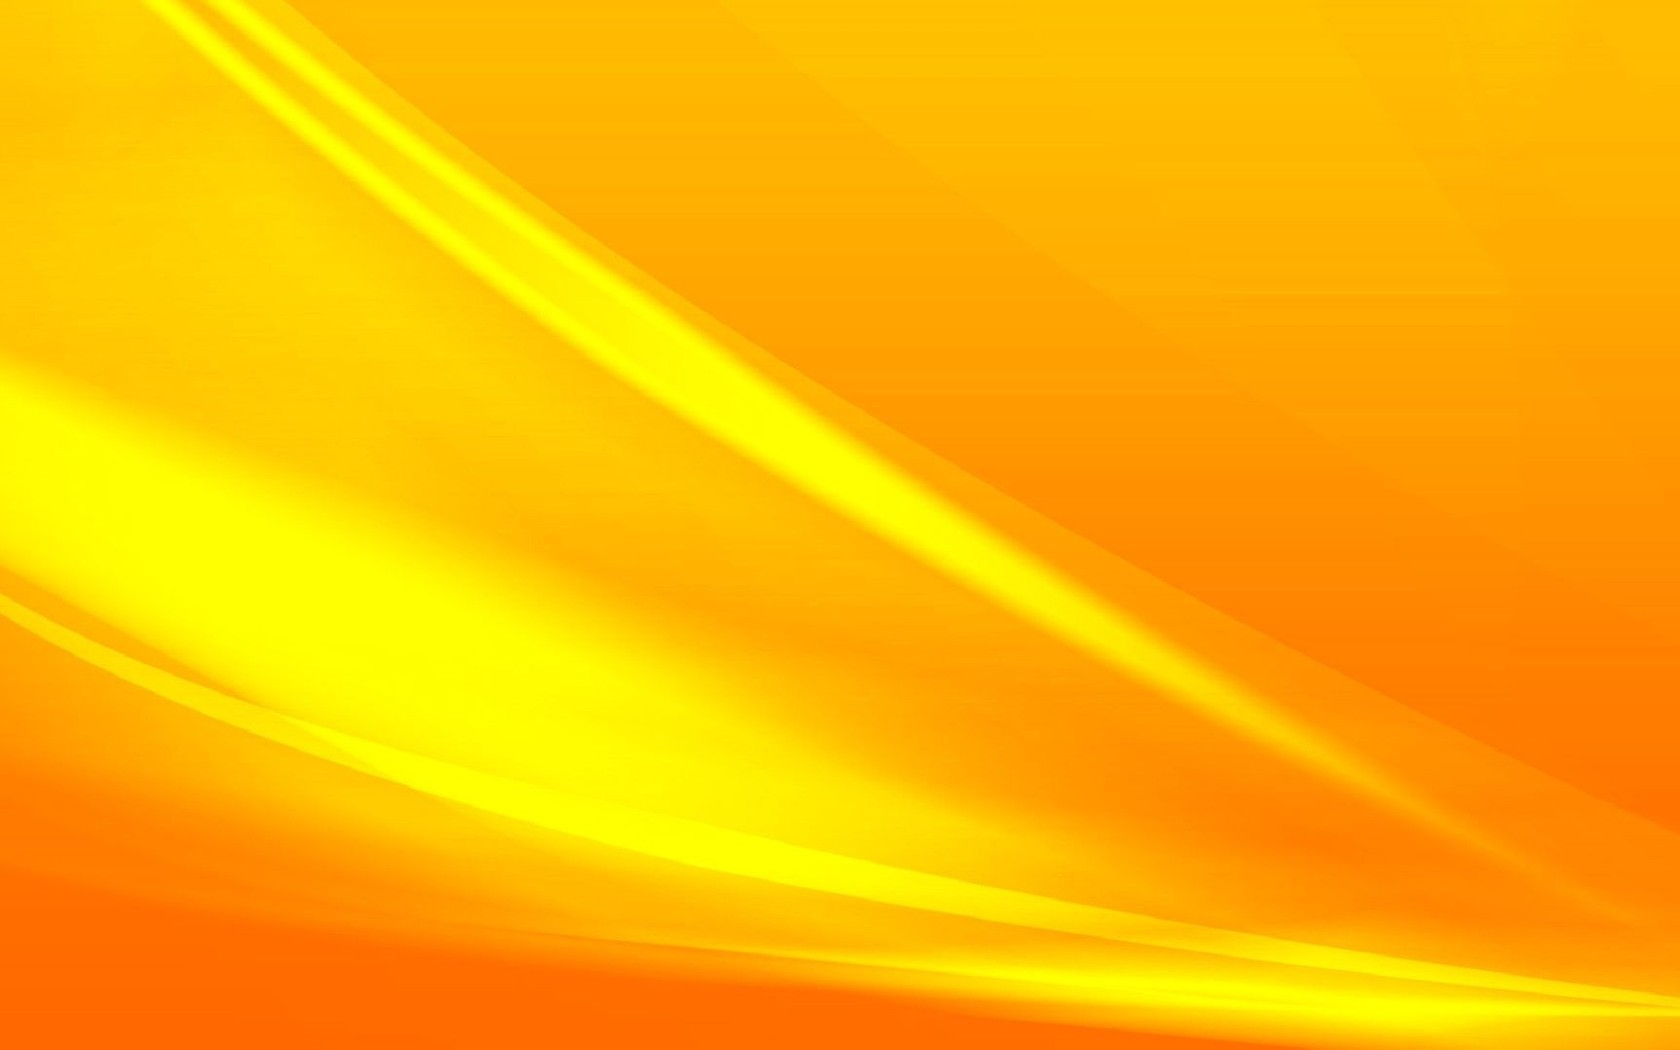 Orange curves wallpaper 9089 1680x1050